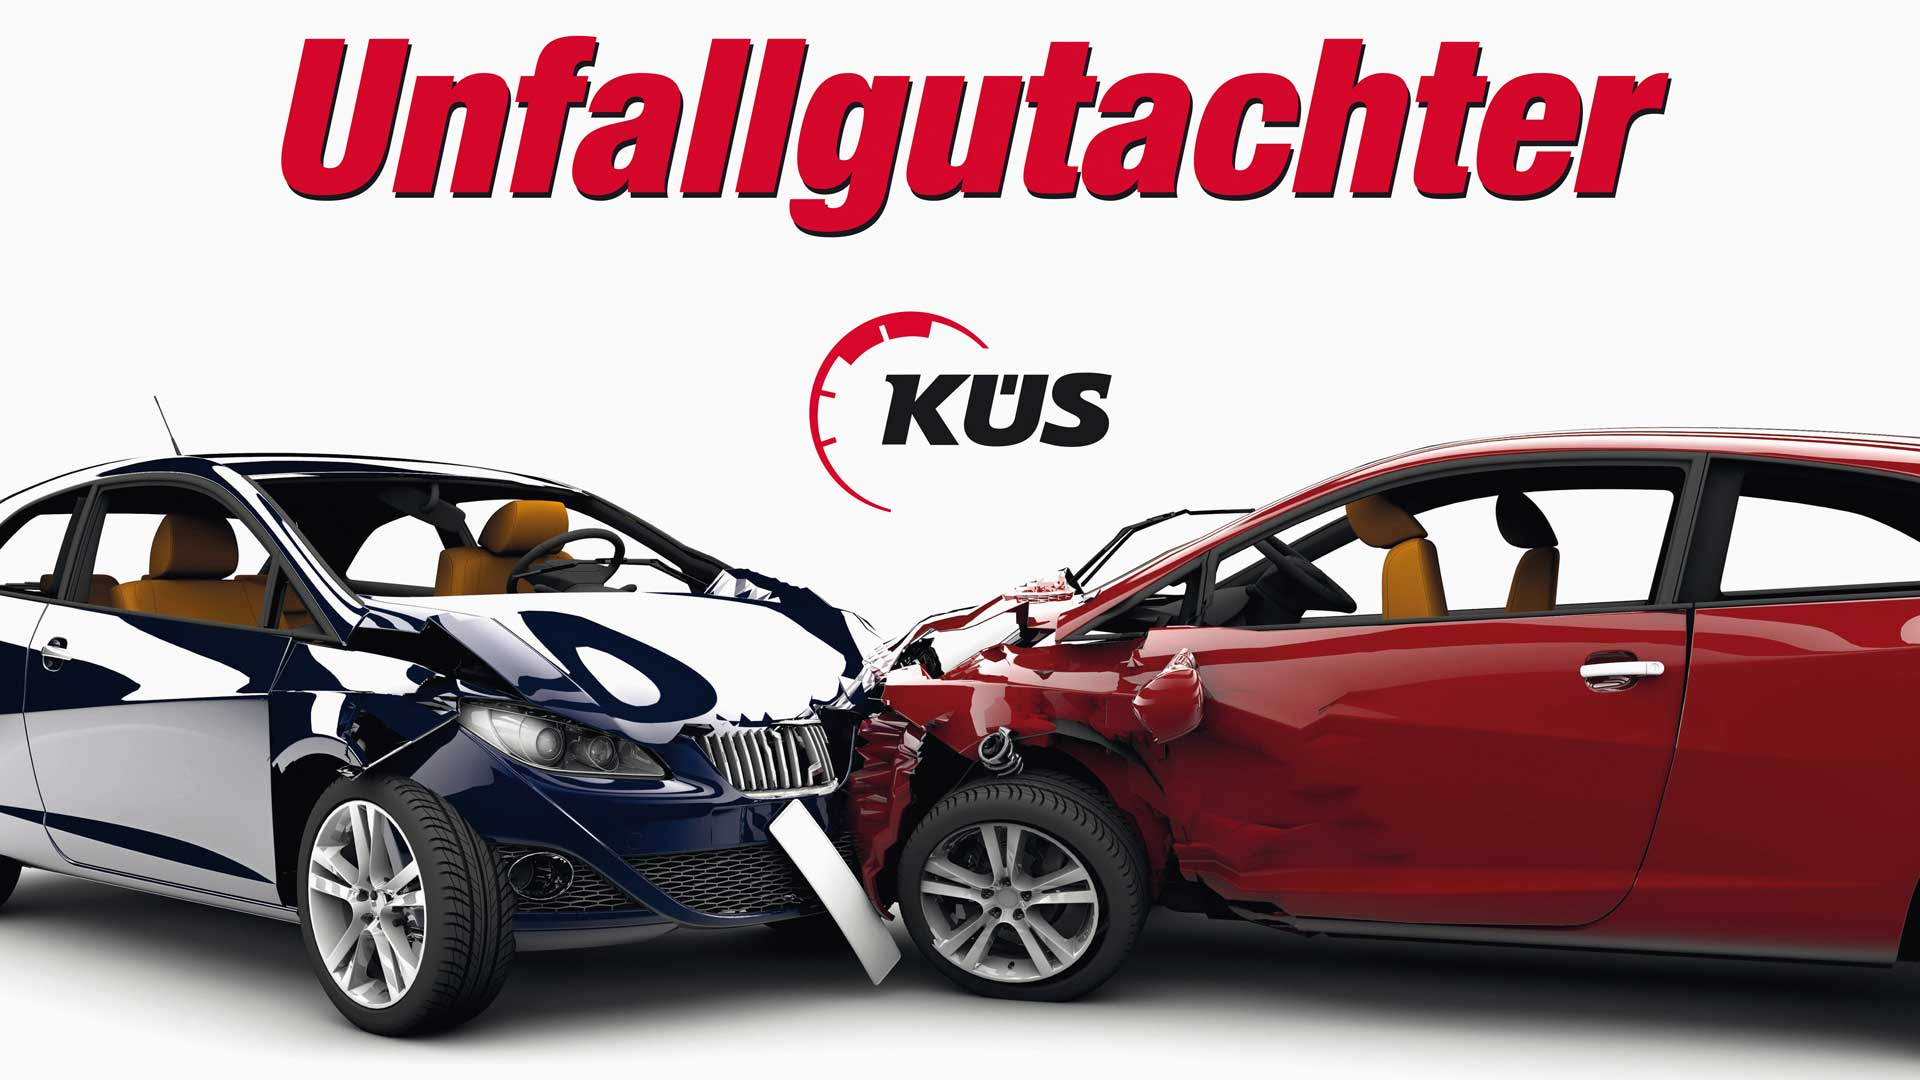 https://gutachter-duisburg.de/wp-content/uploads/2017/10/gutachter-duisburg.de-autos-crash.jpg